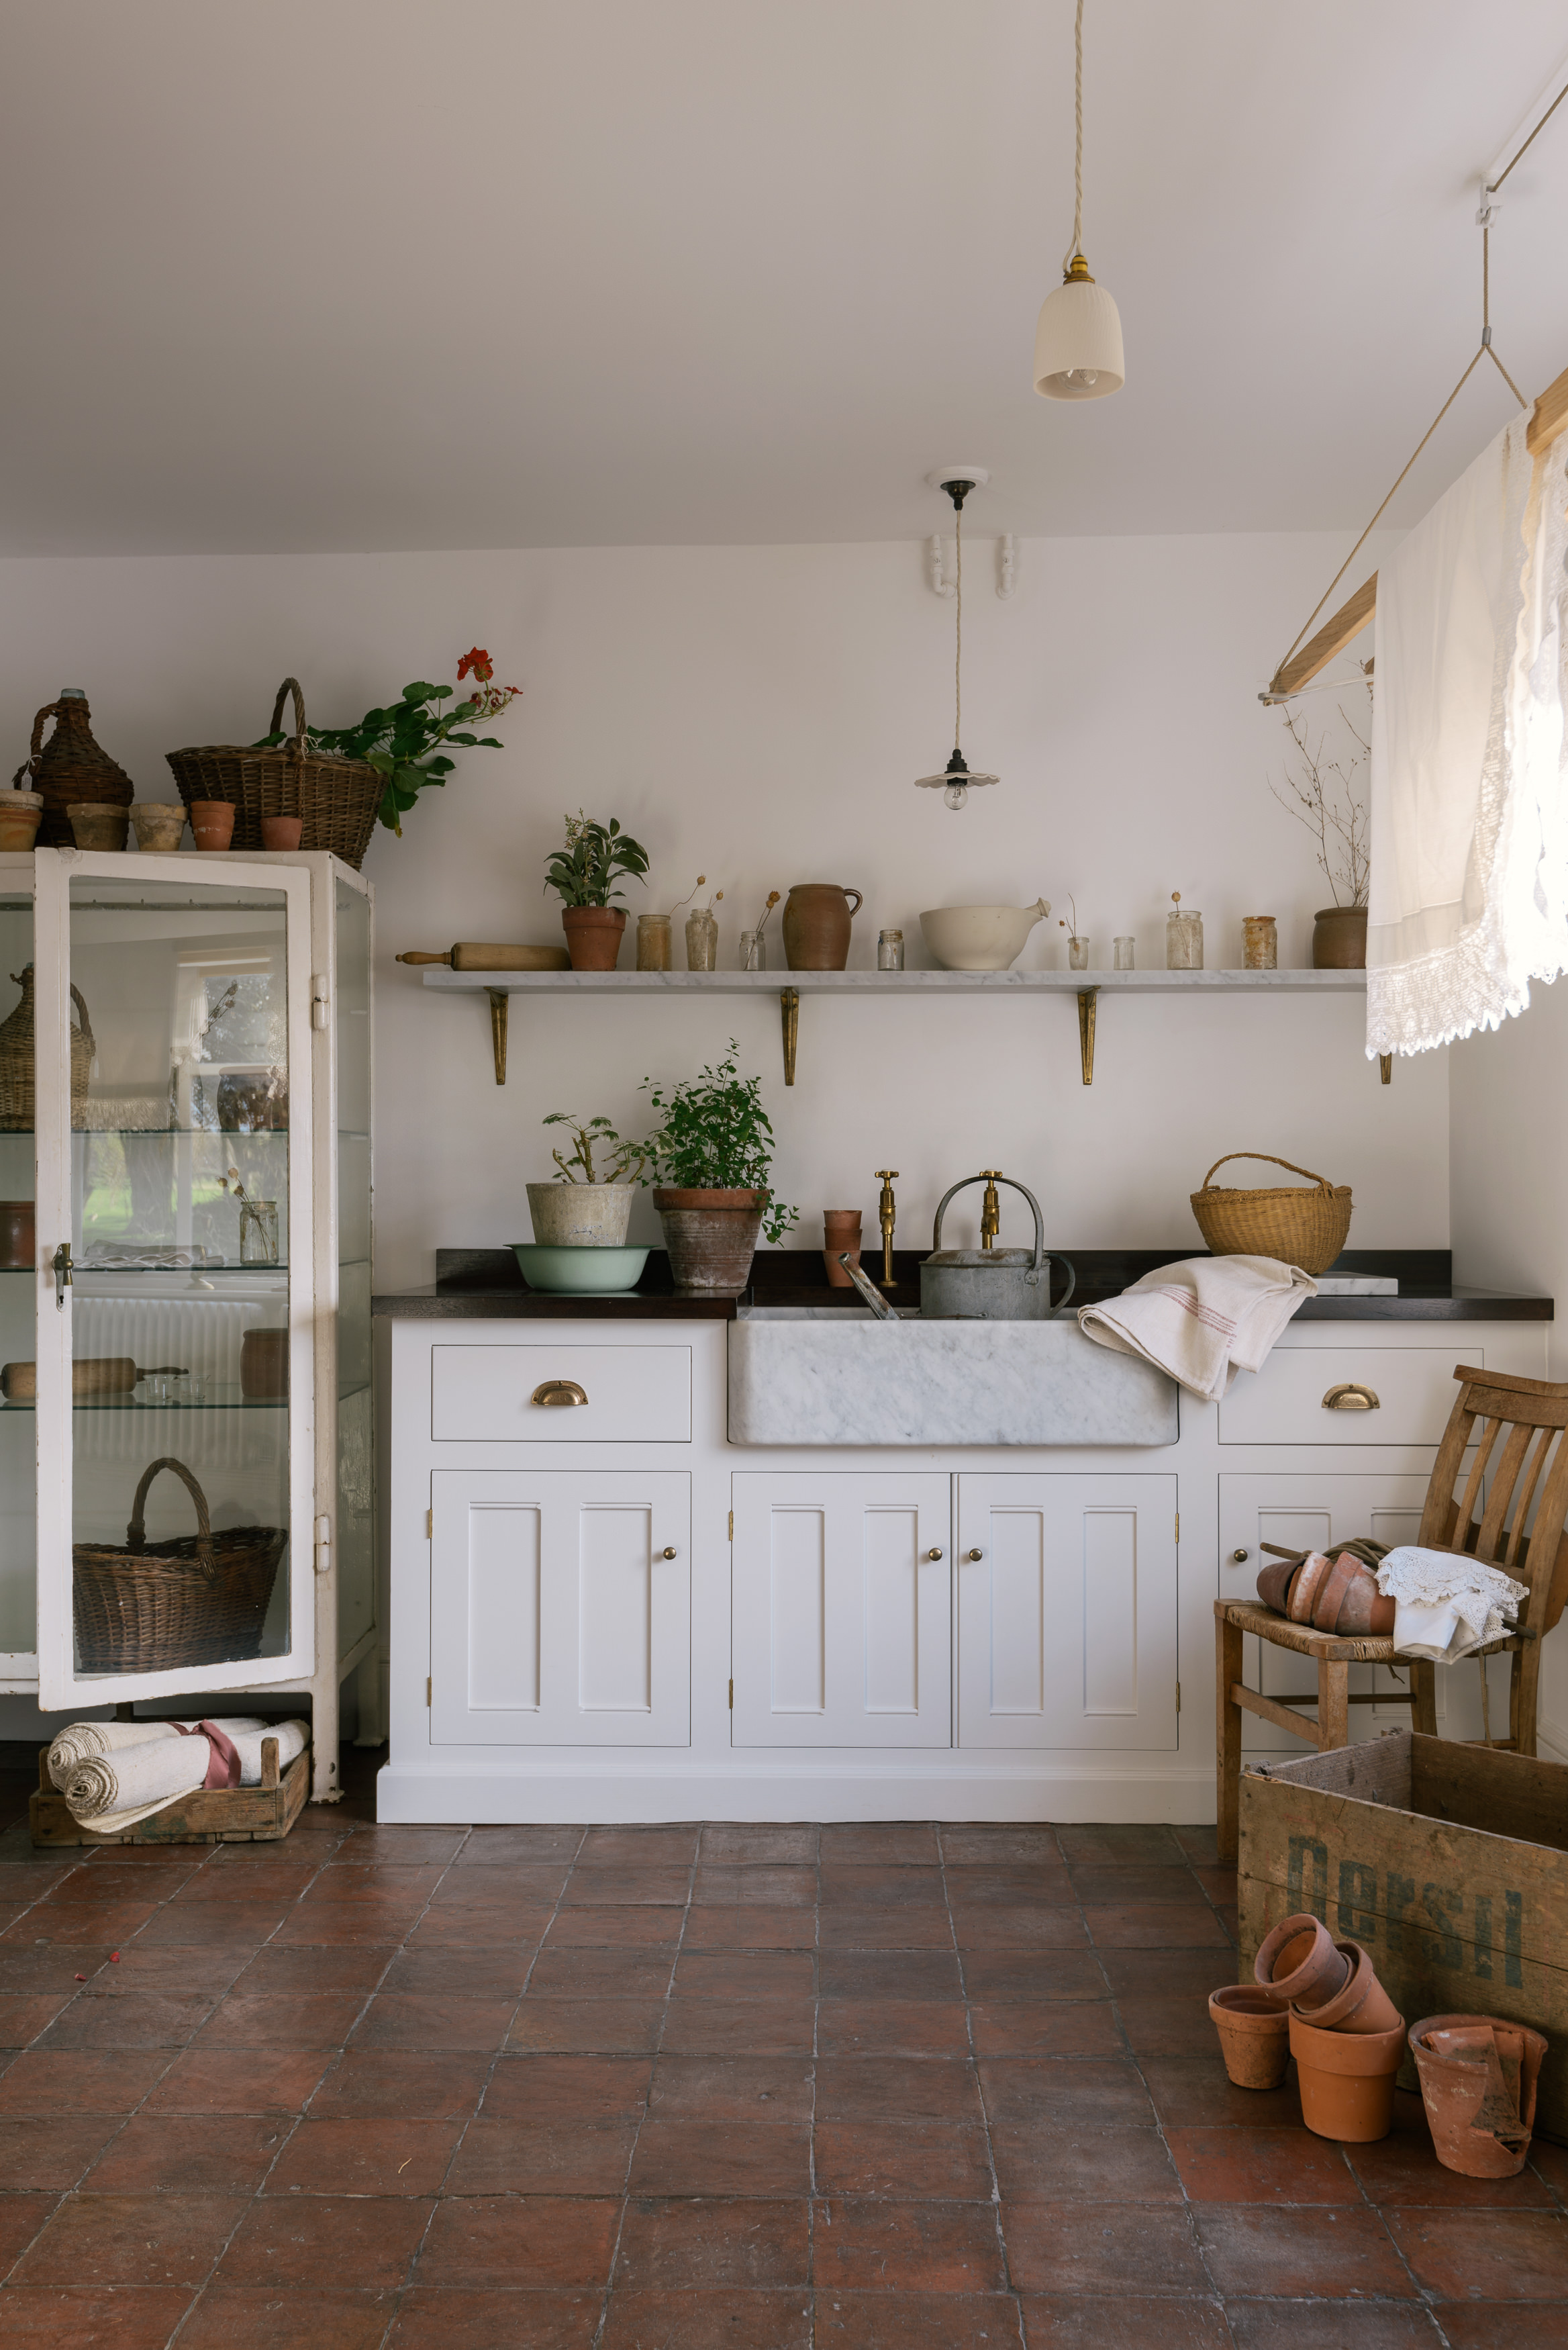 The Millhouse Scullery by deVOL